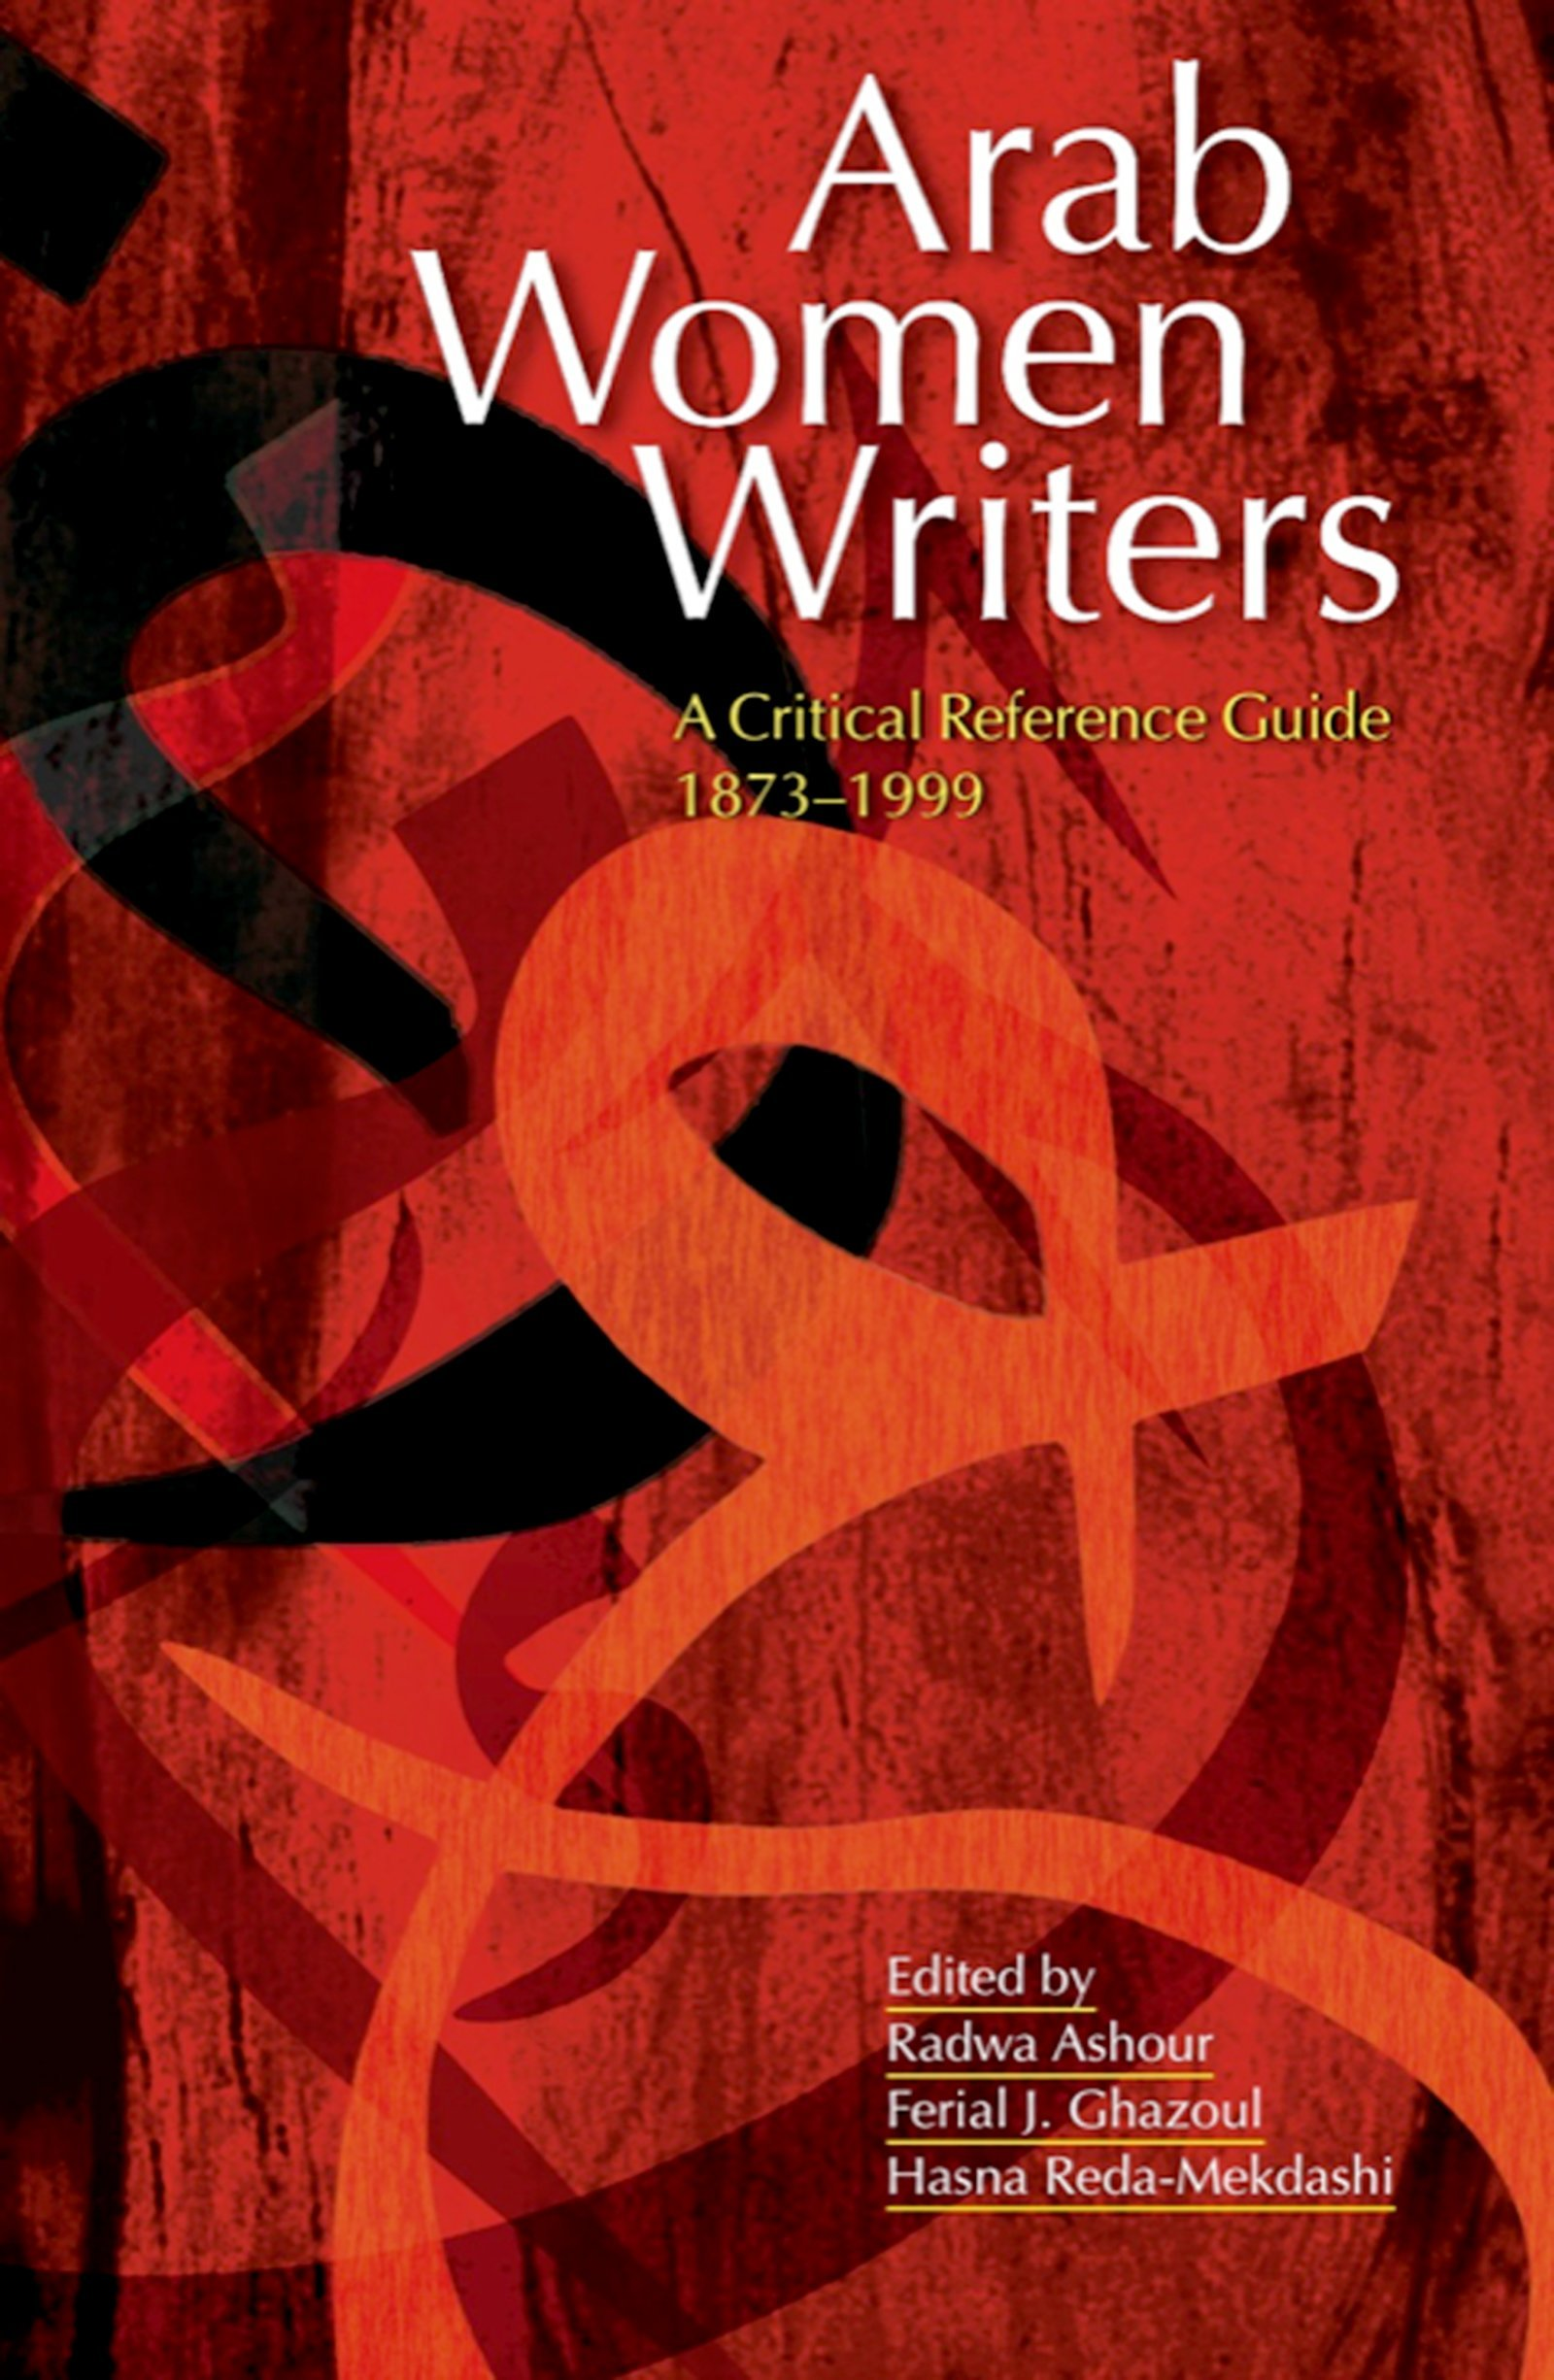 Arab Women Writers: A Critical Reference Guide, 1873-1999 PDF